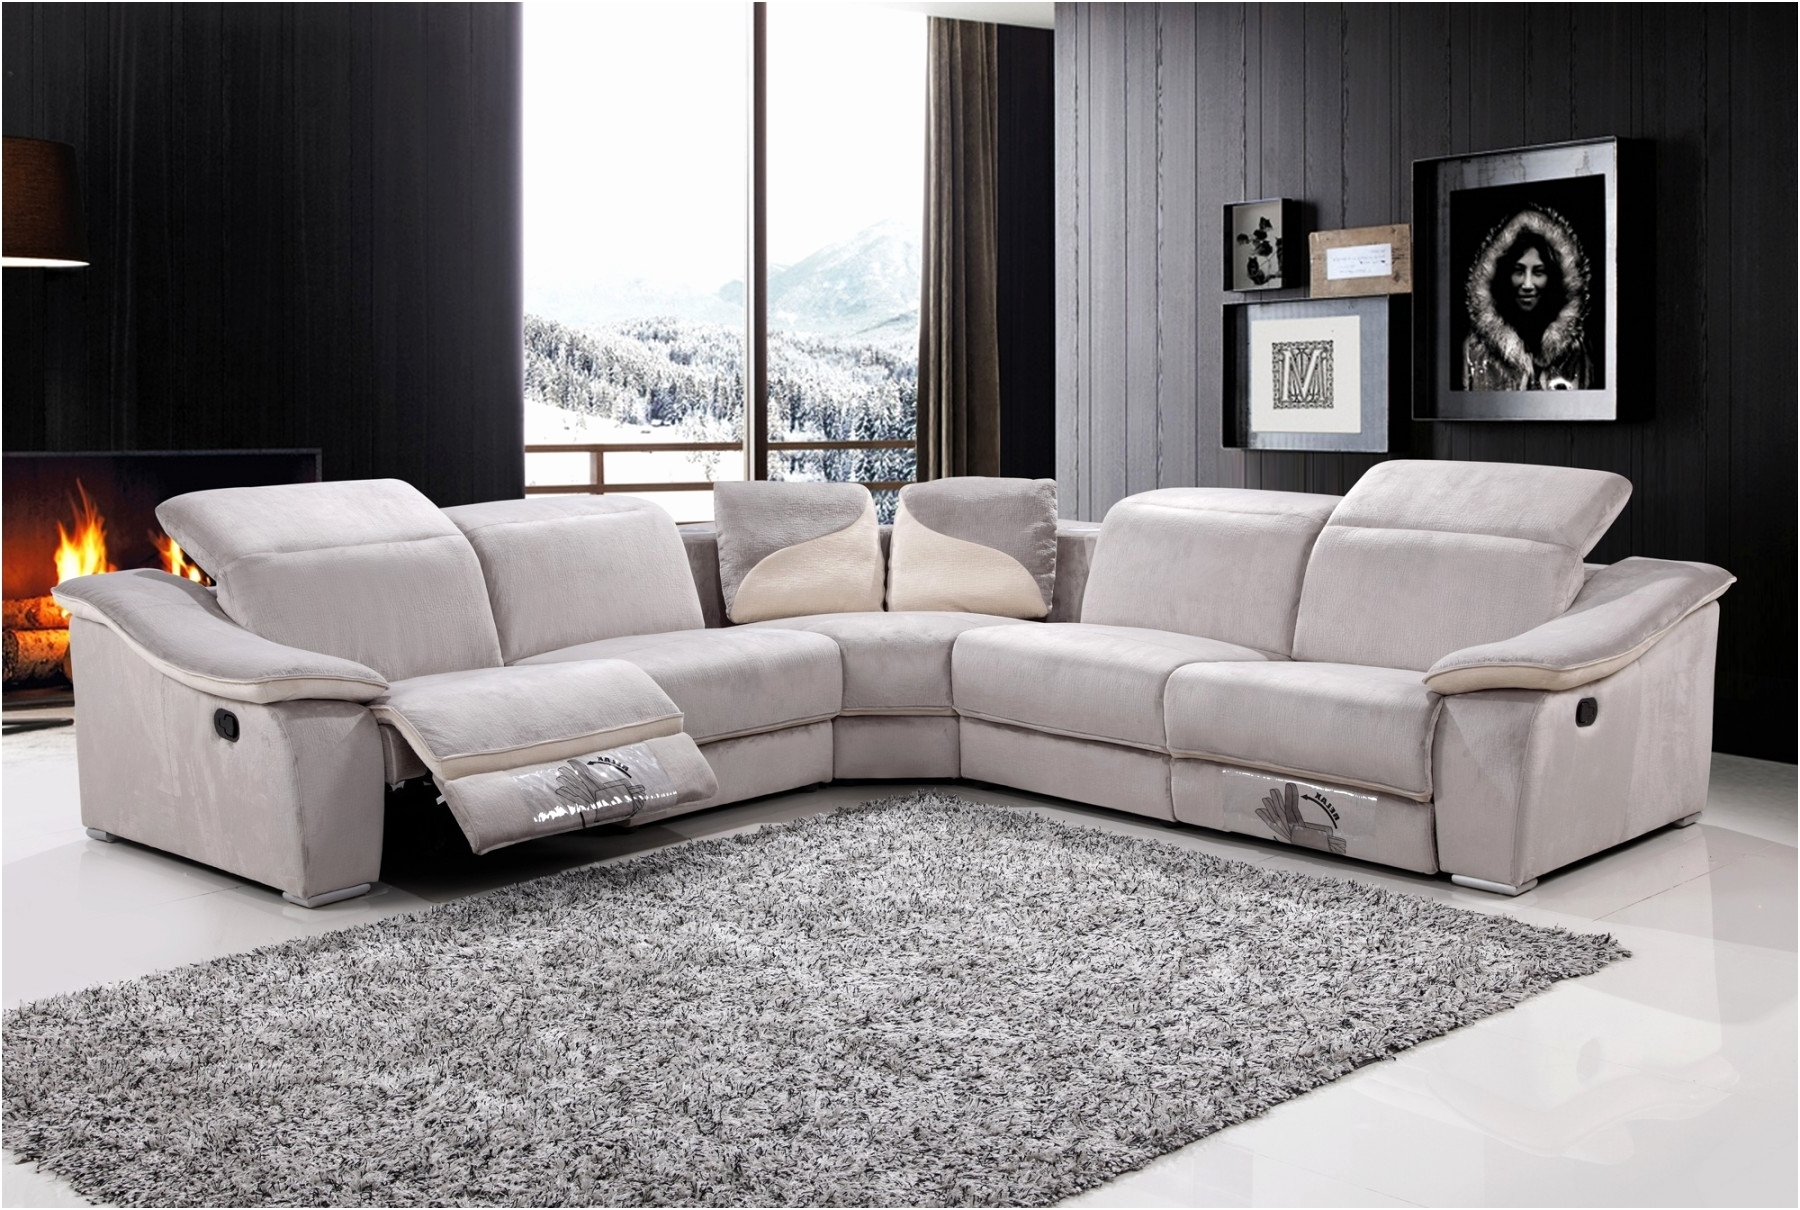 Most Popular Quality Sectional Sofas Pertaining To Unique Bay Area Sofa New – Intuisiblog (View 9 of 20)